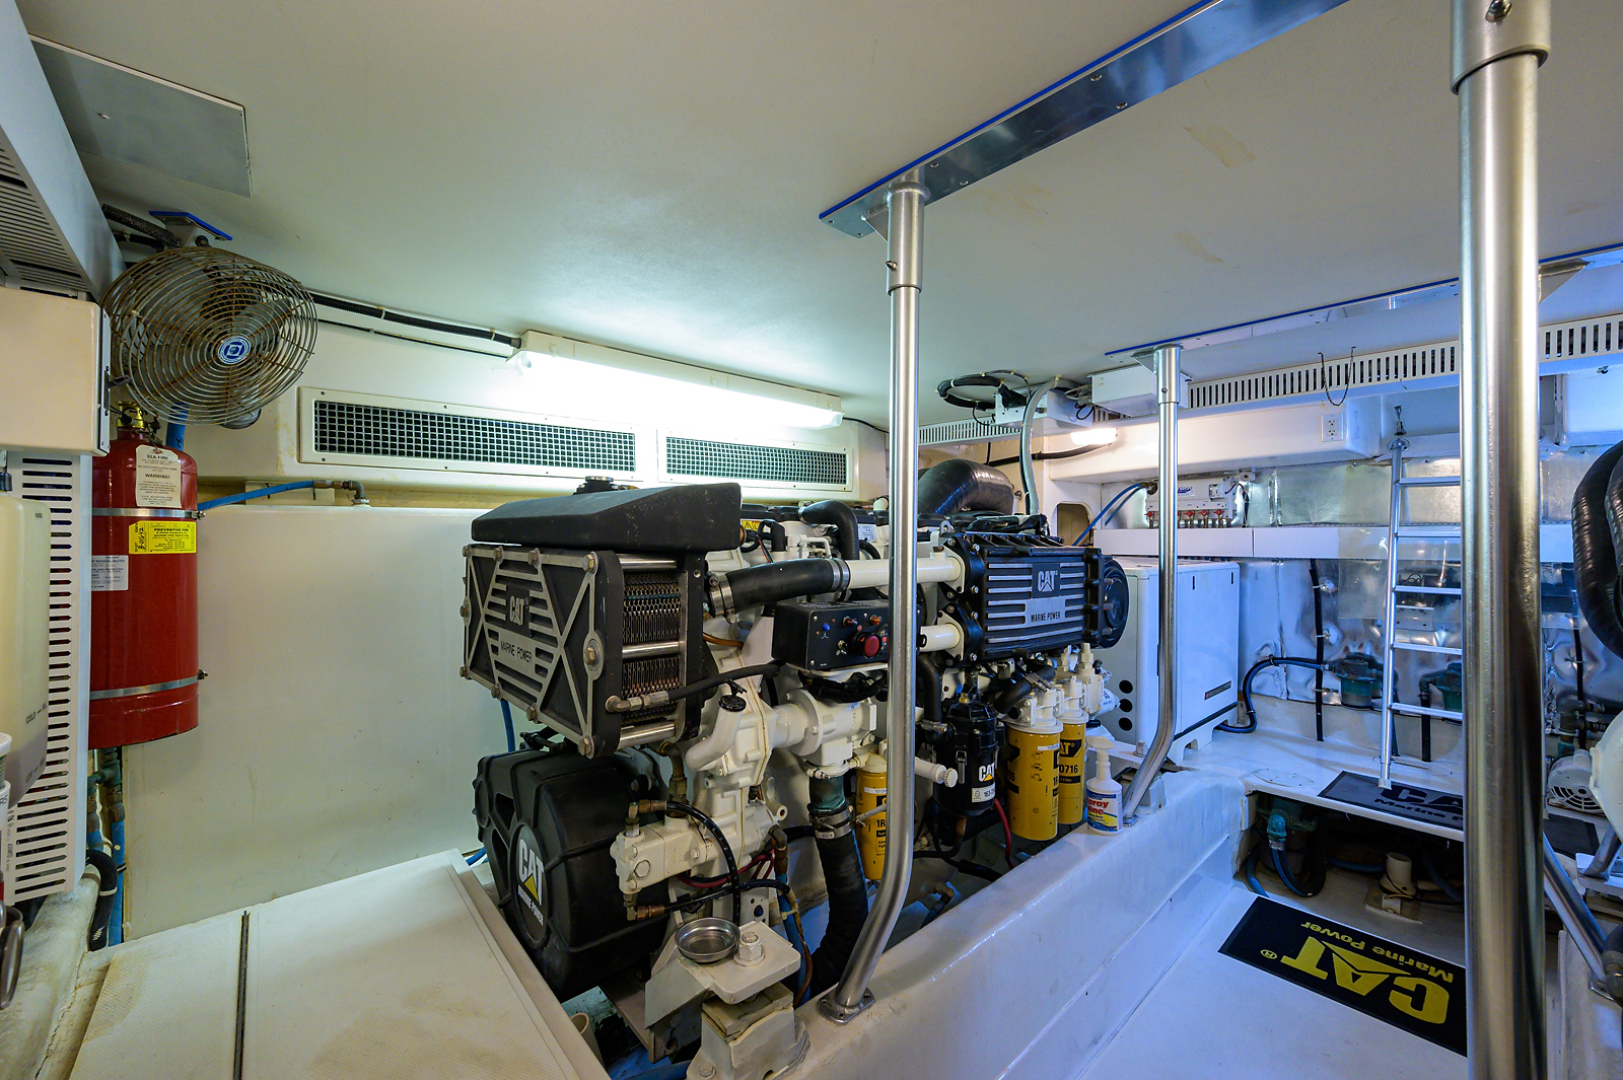 Ocean Yachts-Odyssey 2005-MISS JAN Palm Beach Gardens-Florida-United States-Engine Room-1387046 | Thumbnail